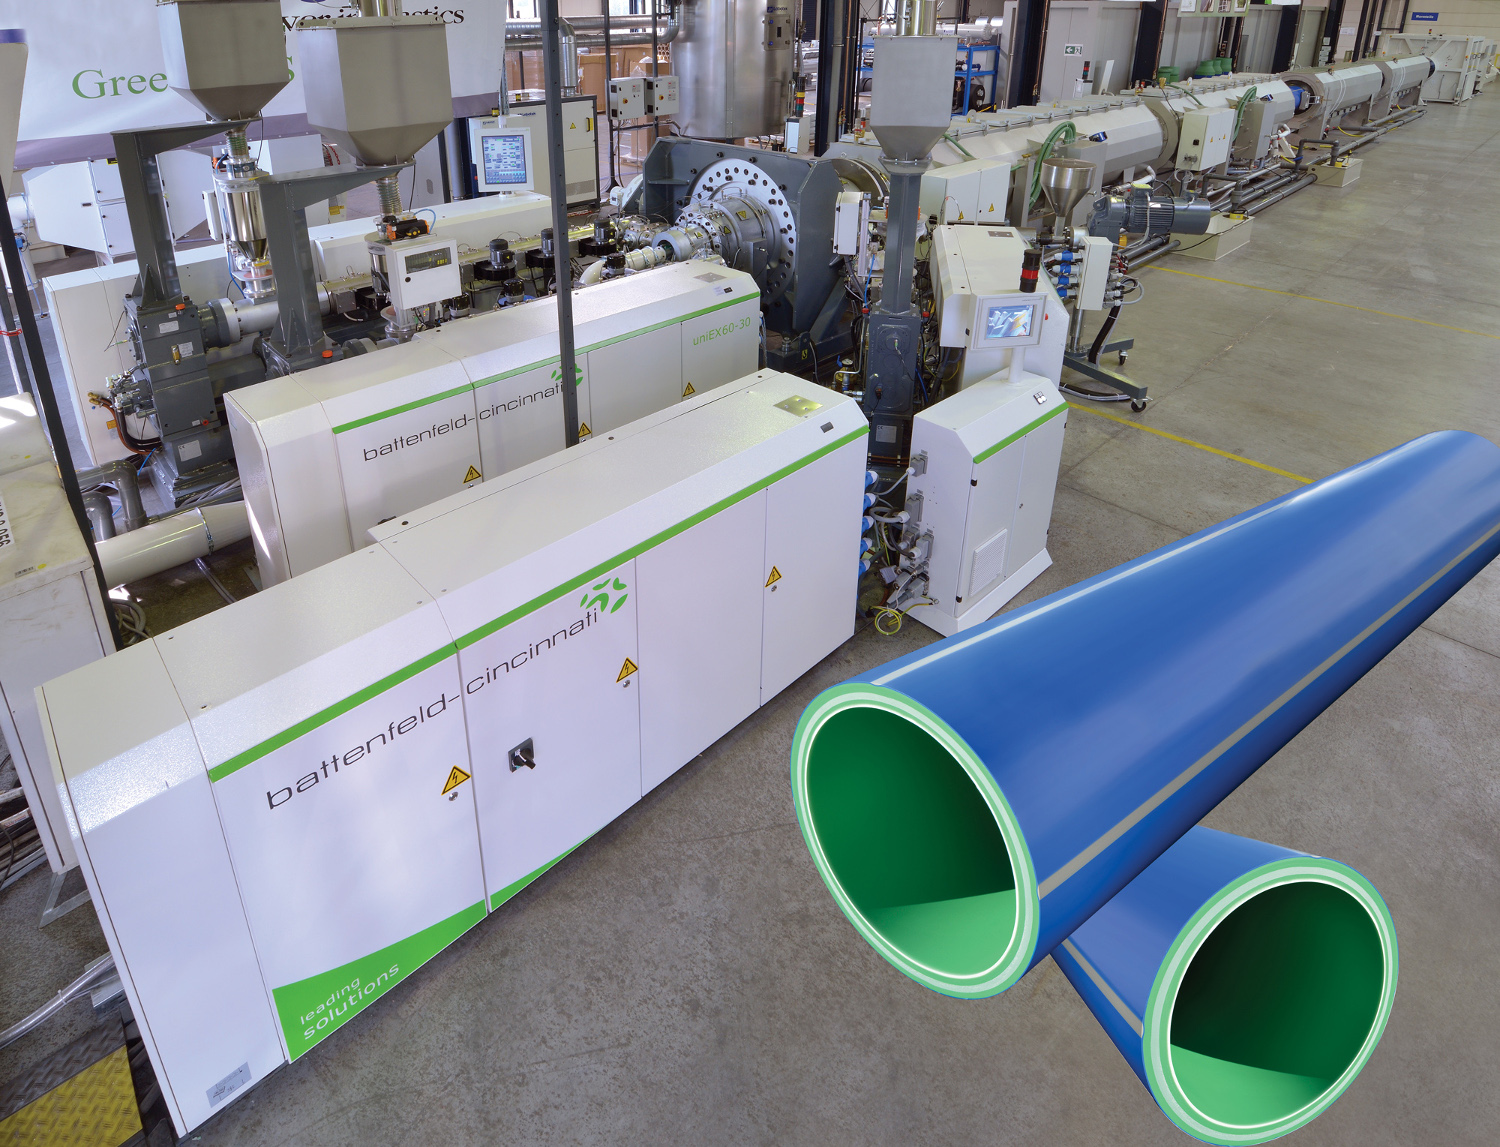 High performance line for quadruple uPVC pipe extrusion with a twinEX 114-28R extruder photo: battenfeld-cincinnati